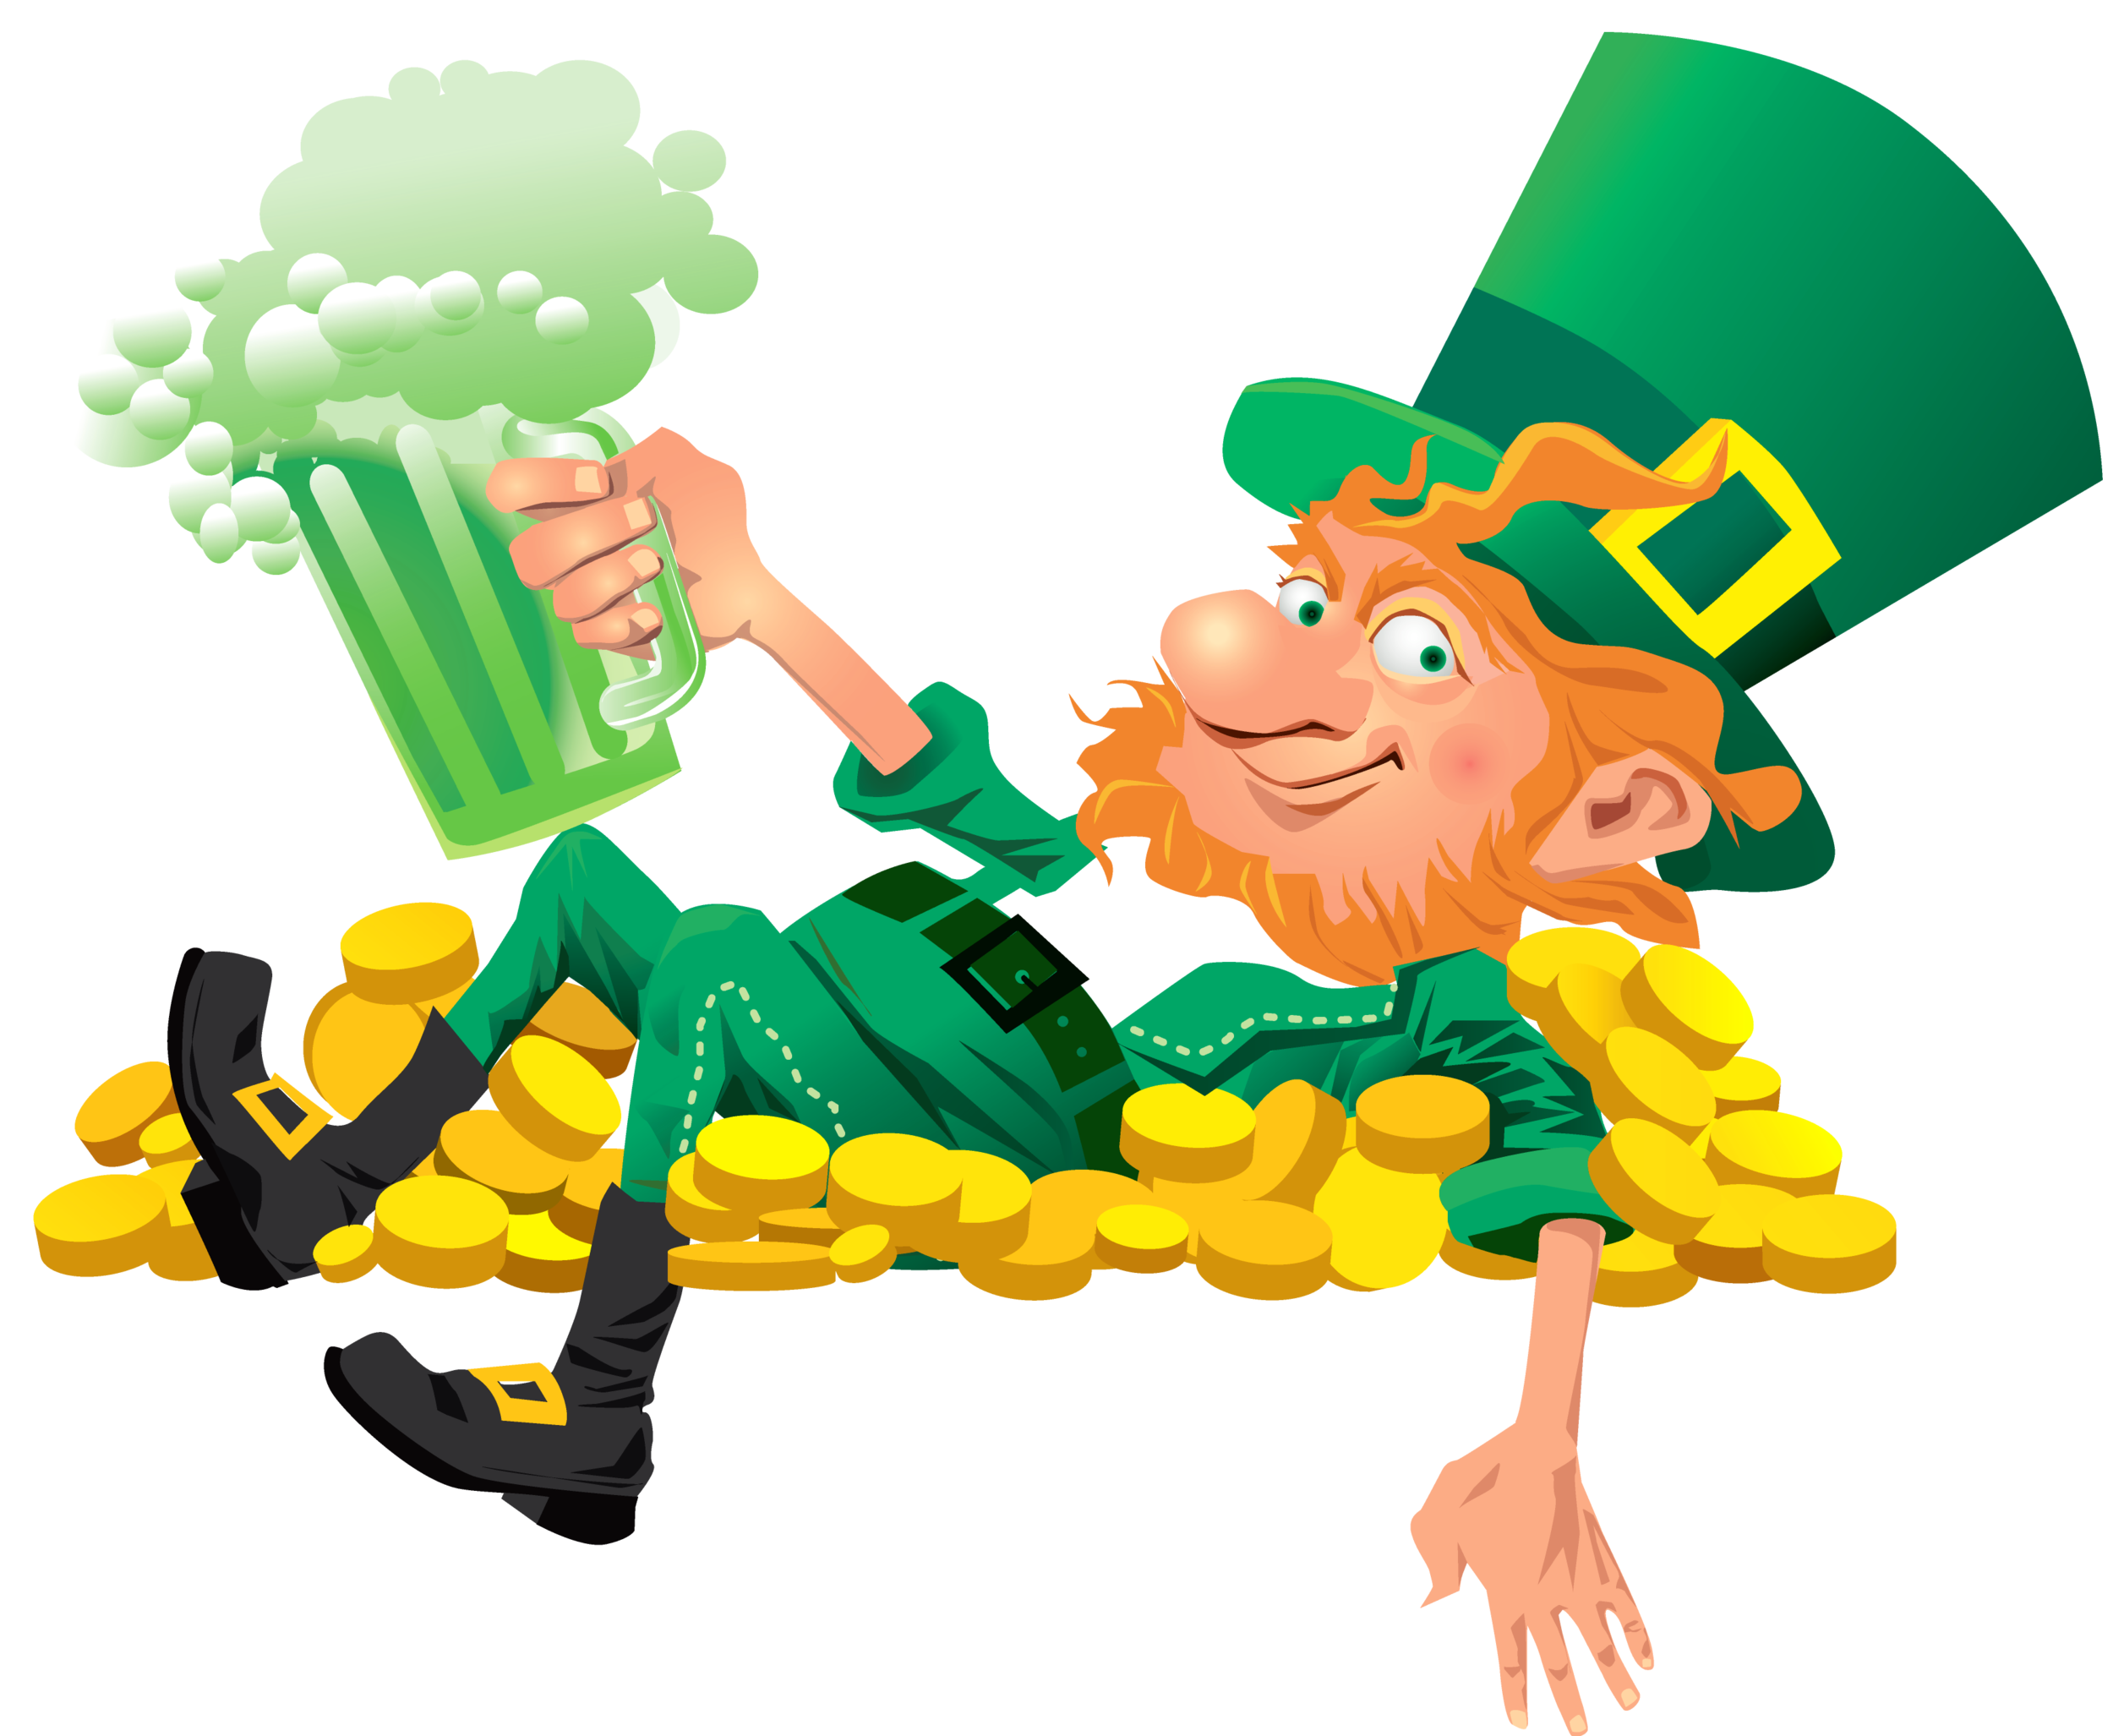 Sweet science boxing can. Fart clipart leprechaun